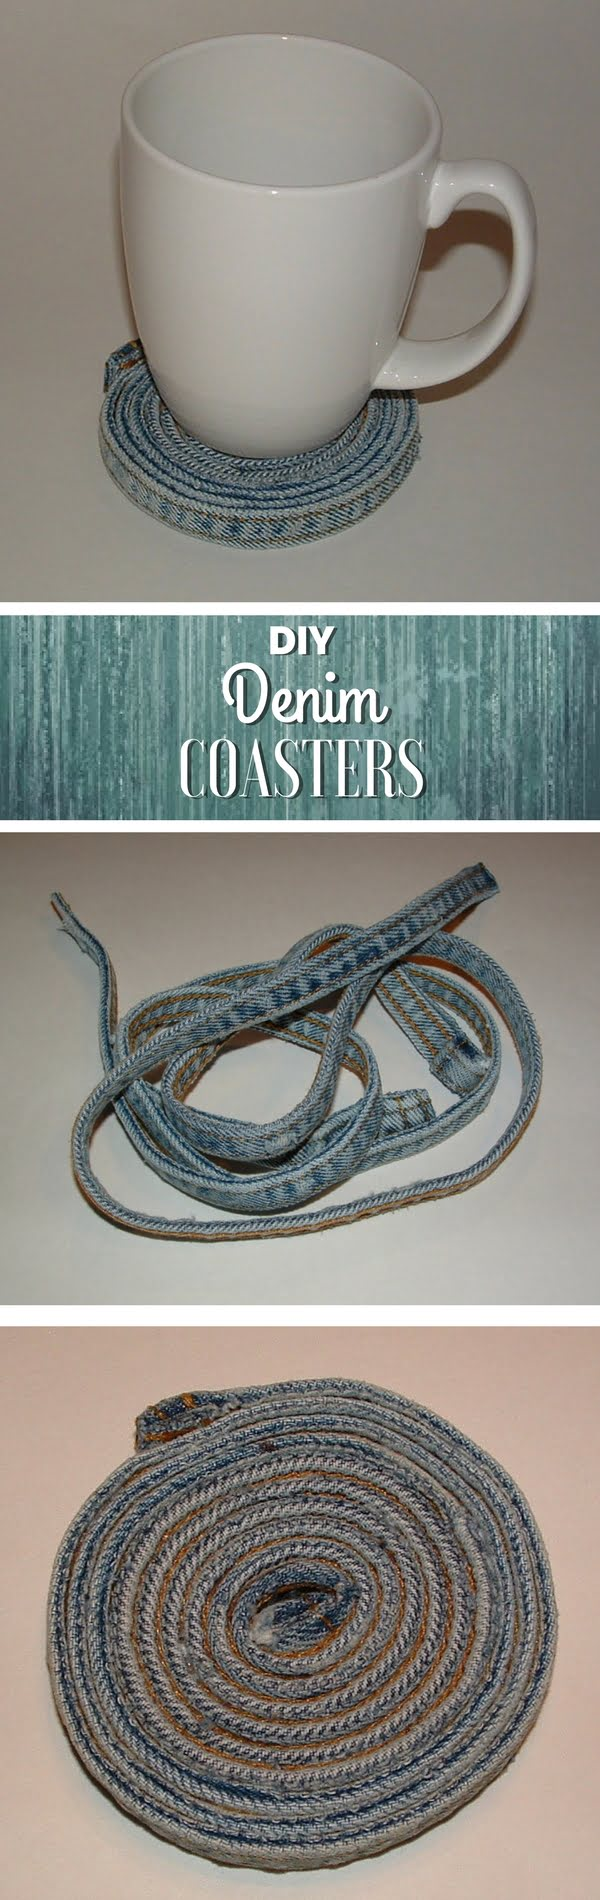 Check out how to make a decorative DIY coaster from reclaimed jeans